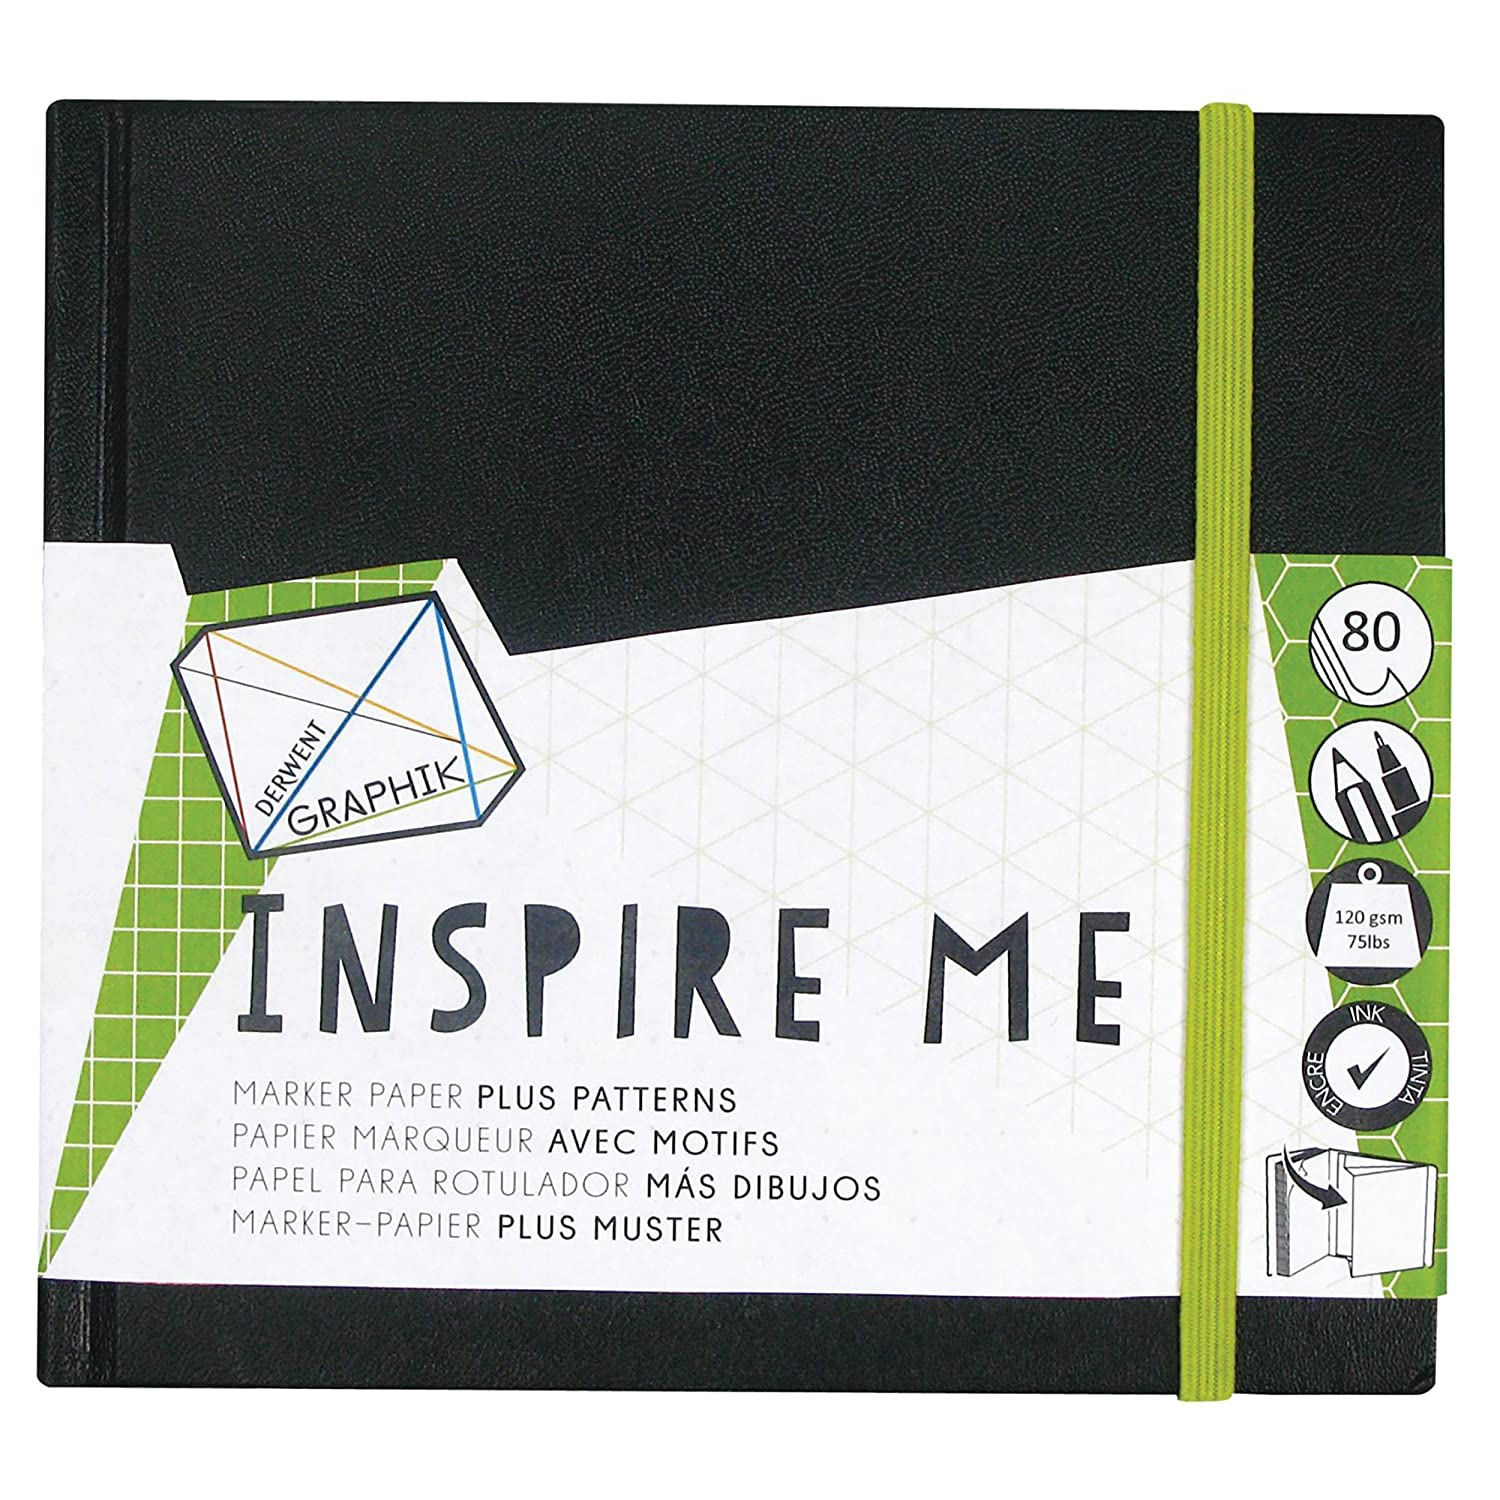 Derwent Medium Sketch Book, Graphik Inspire Me, 80-Pages of Bleed Proof Patterned Paper (2302237) Reeves